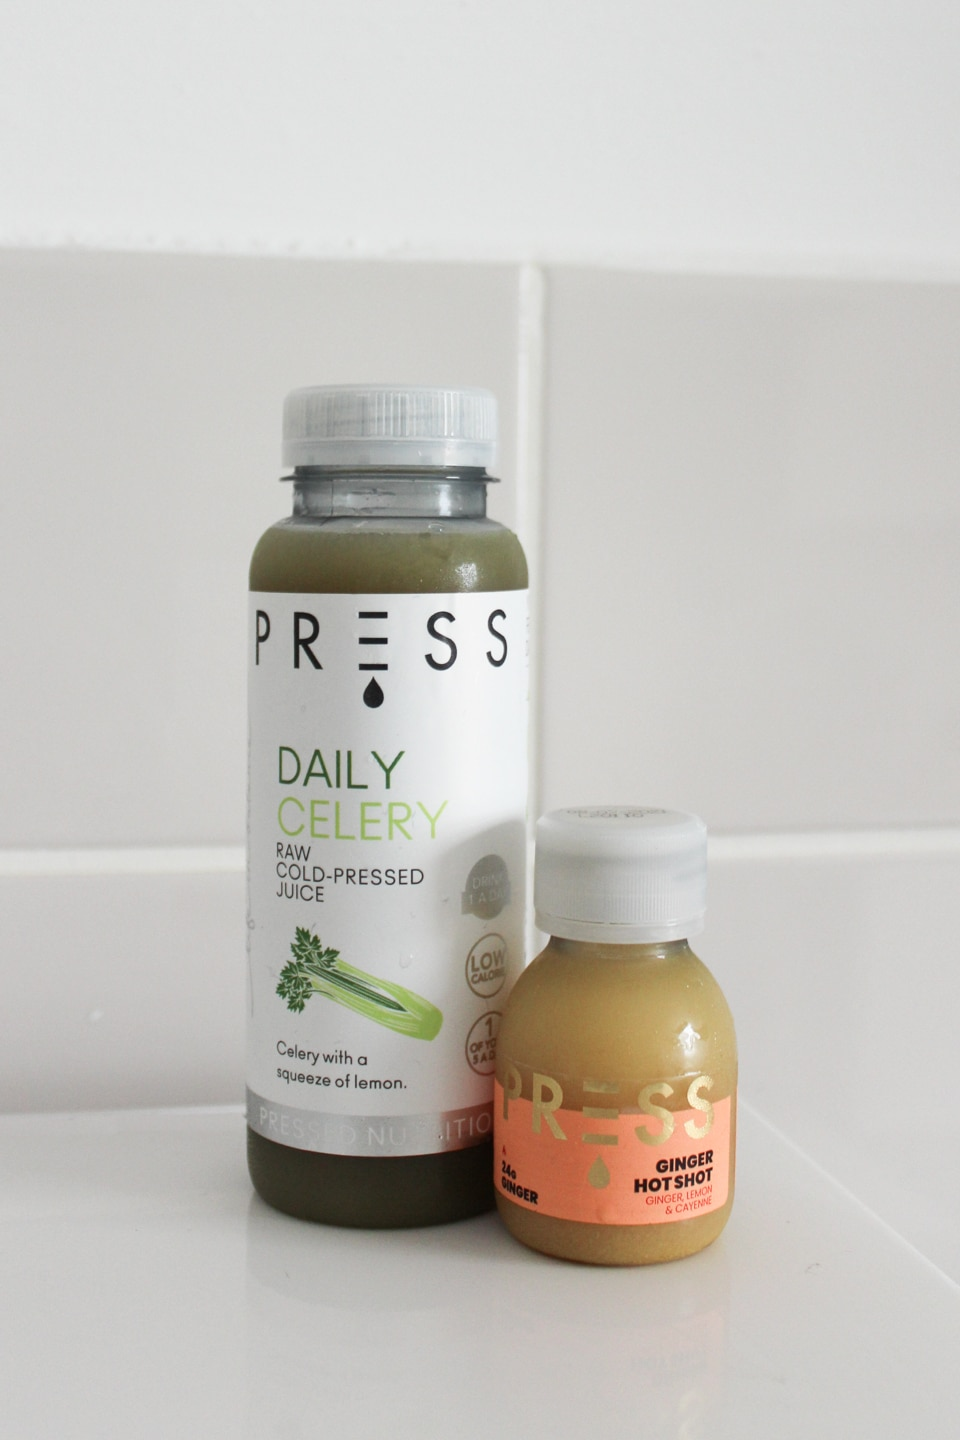 PRESS Daily Celery and Ginger Hot Shot